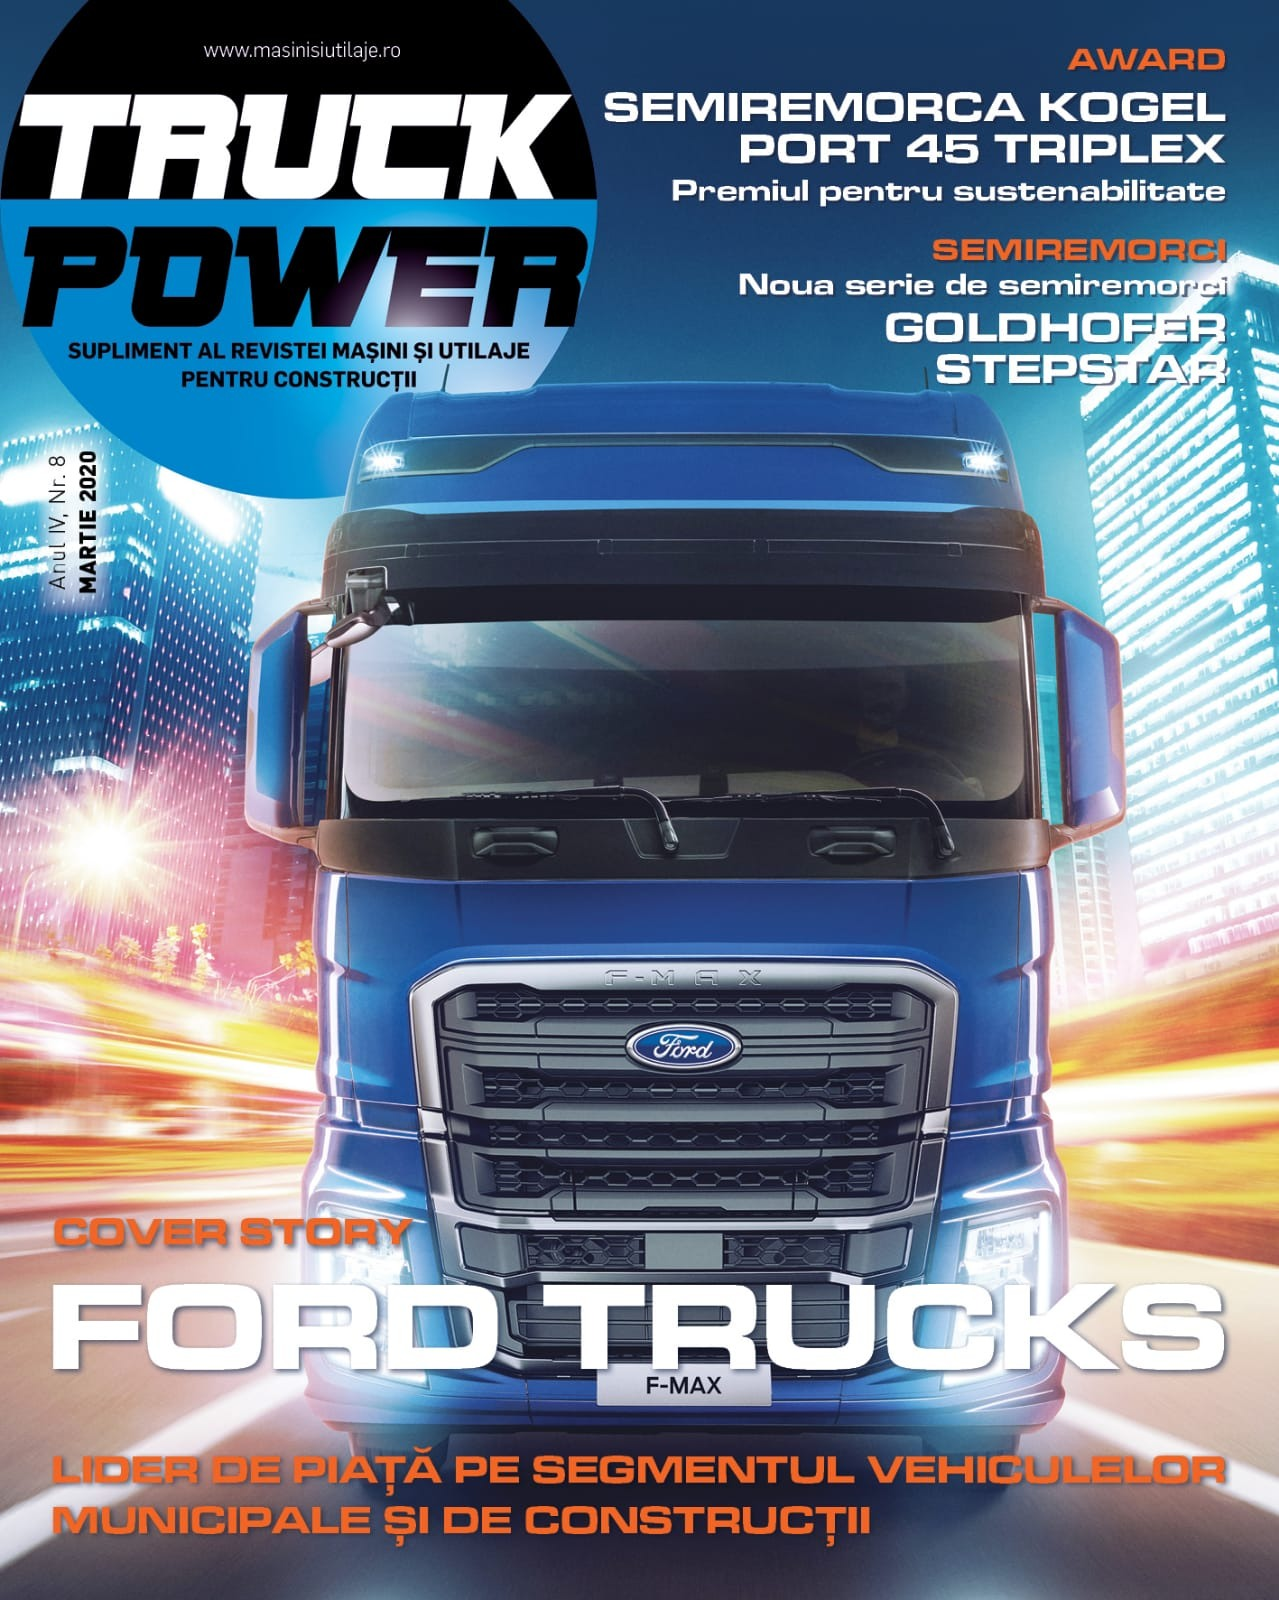 PRESA - Cover story Truck Power - Martie 2020